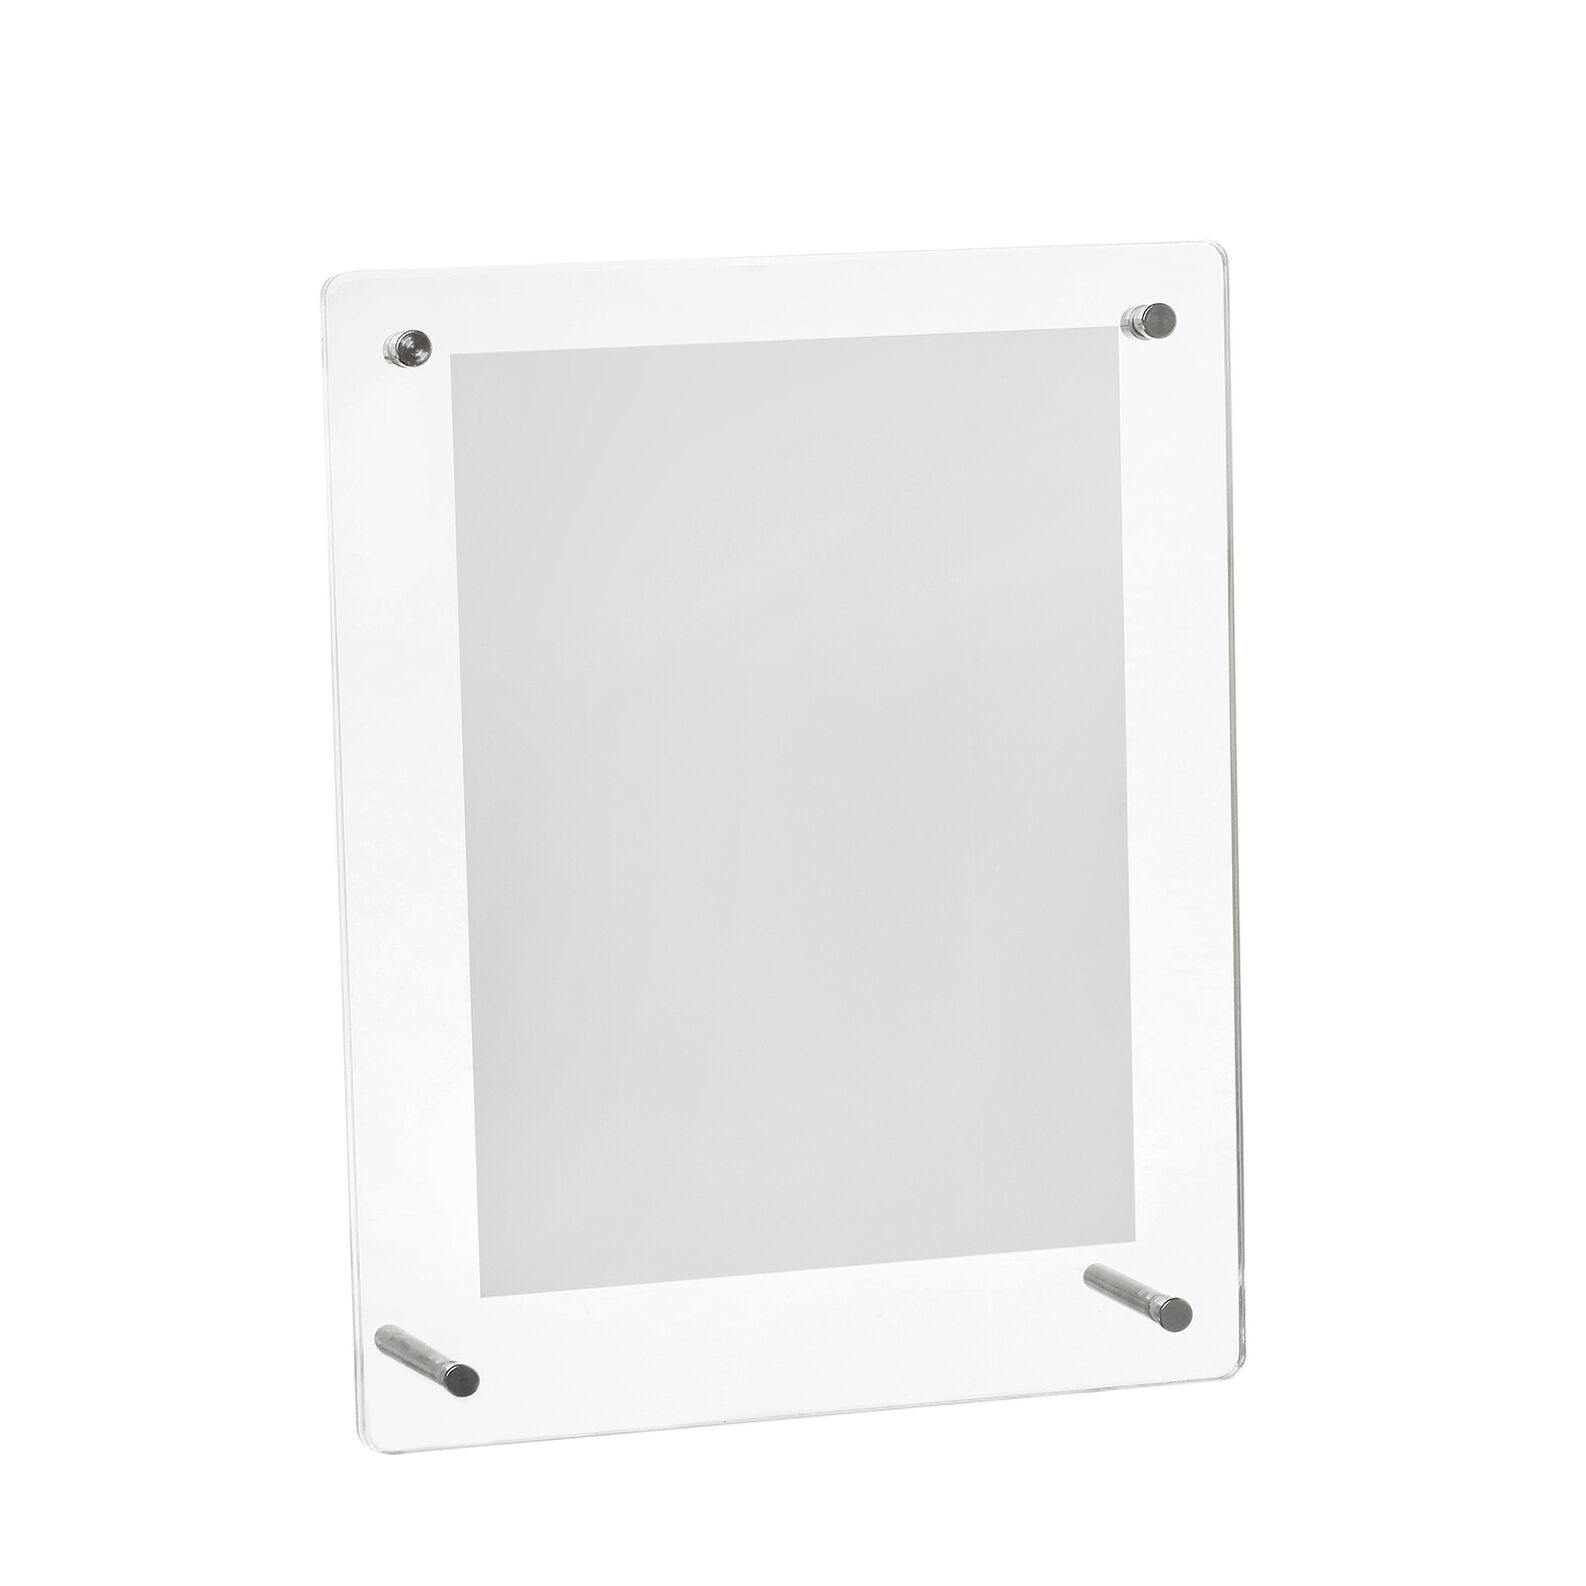 Transparent photo frame with profile